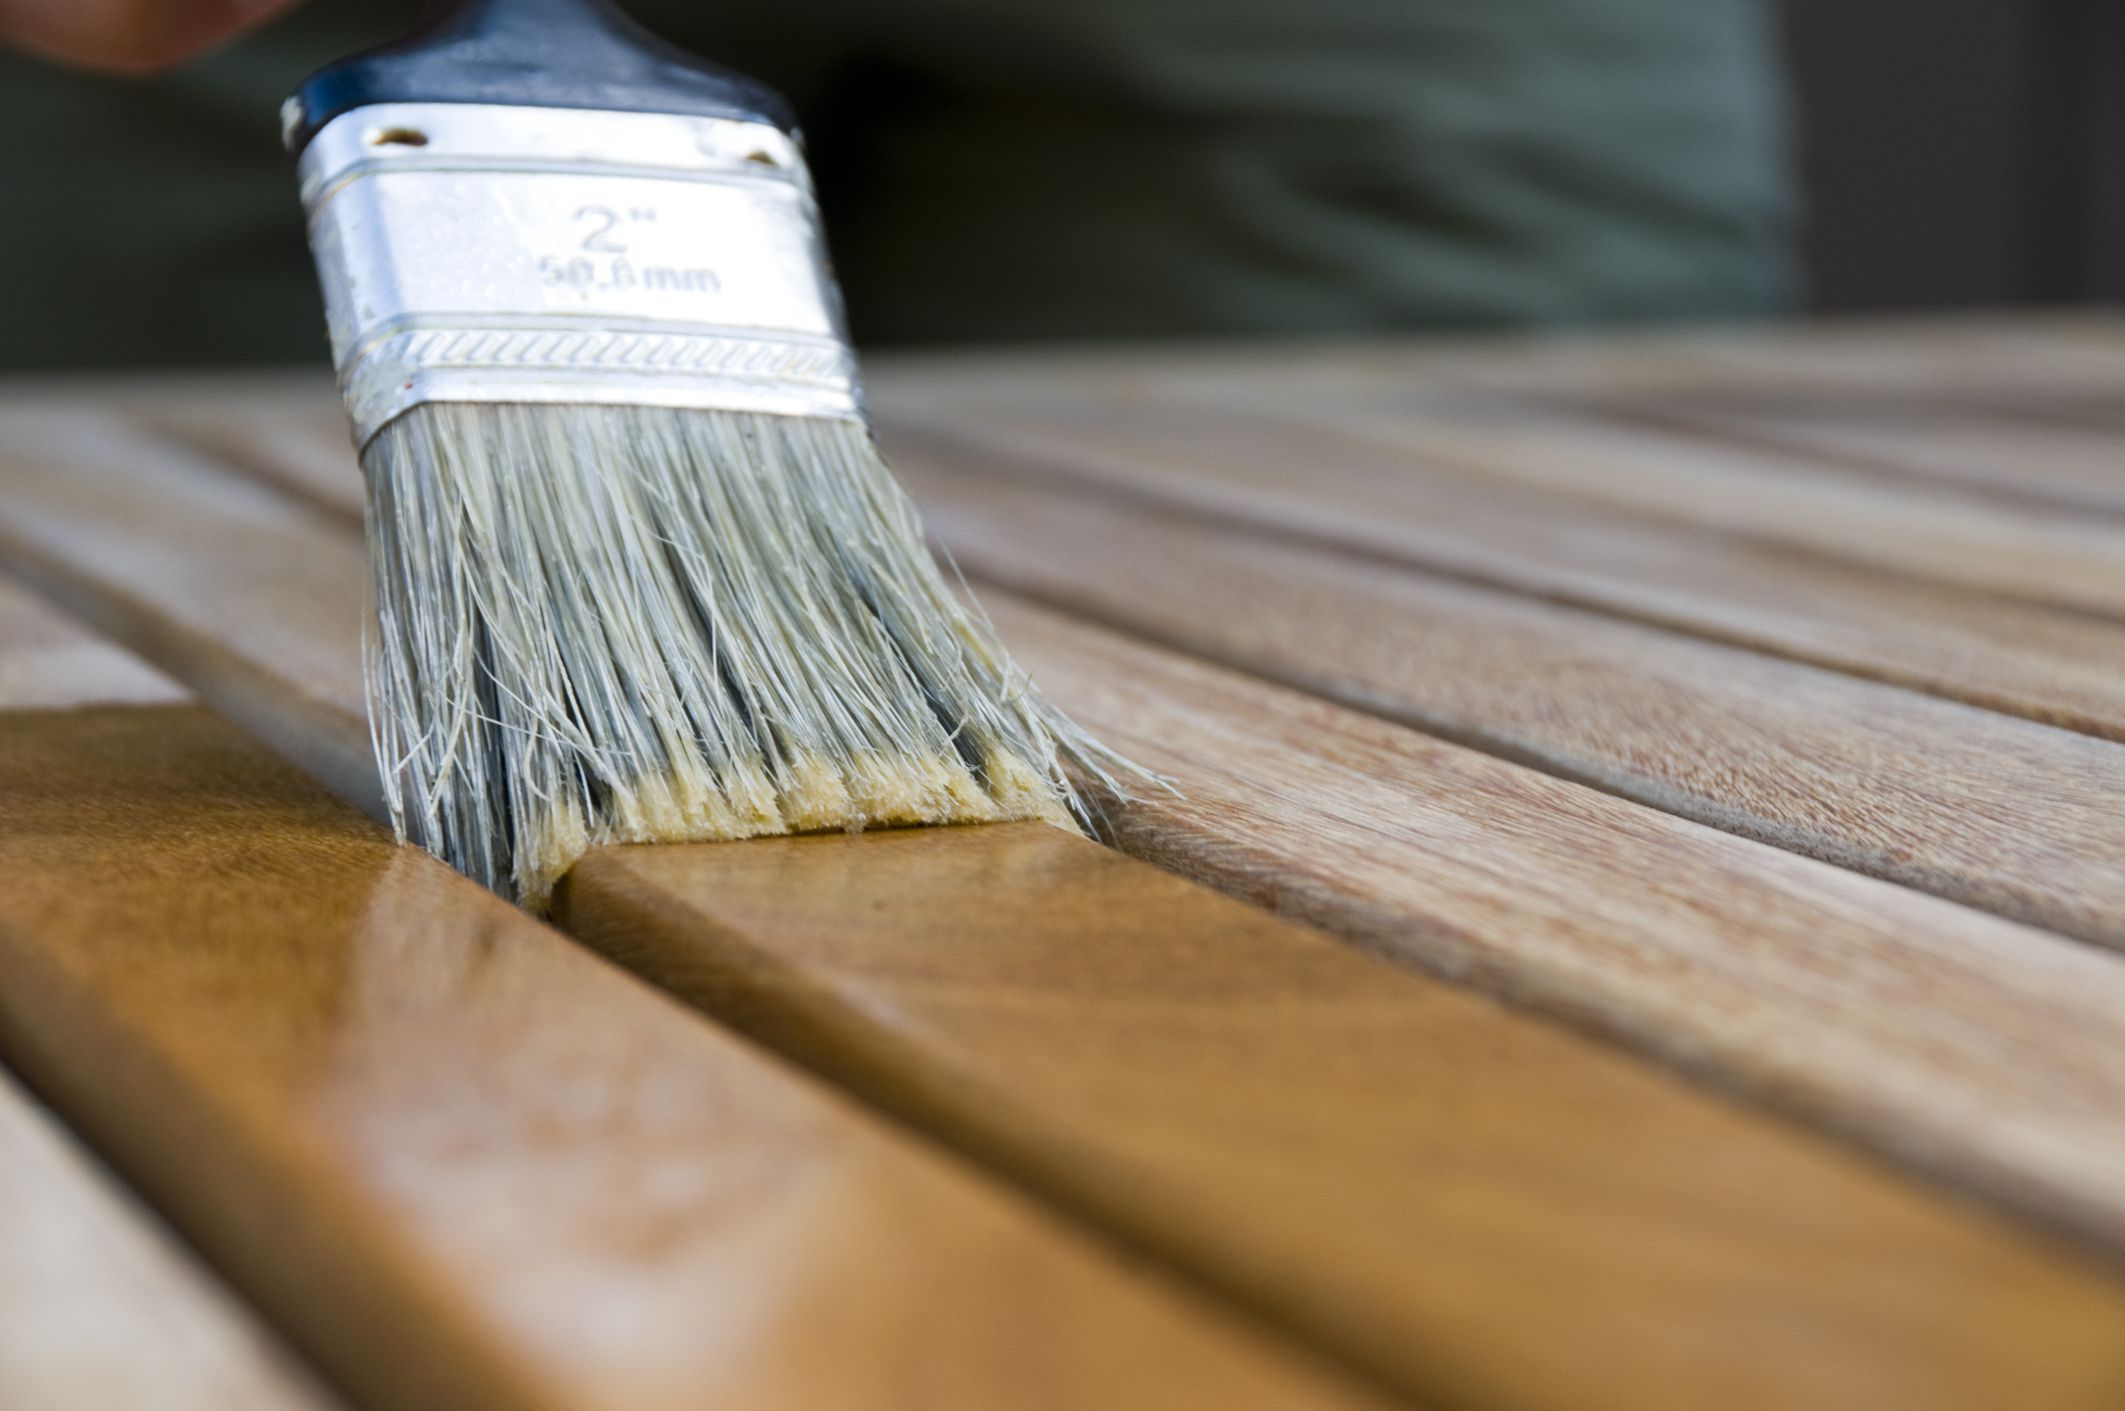 How To Remove Wax From Wood Before Painting